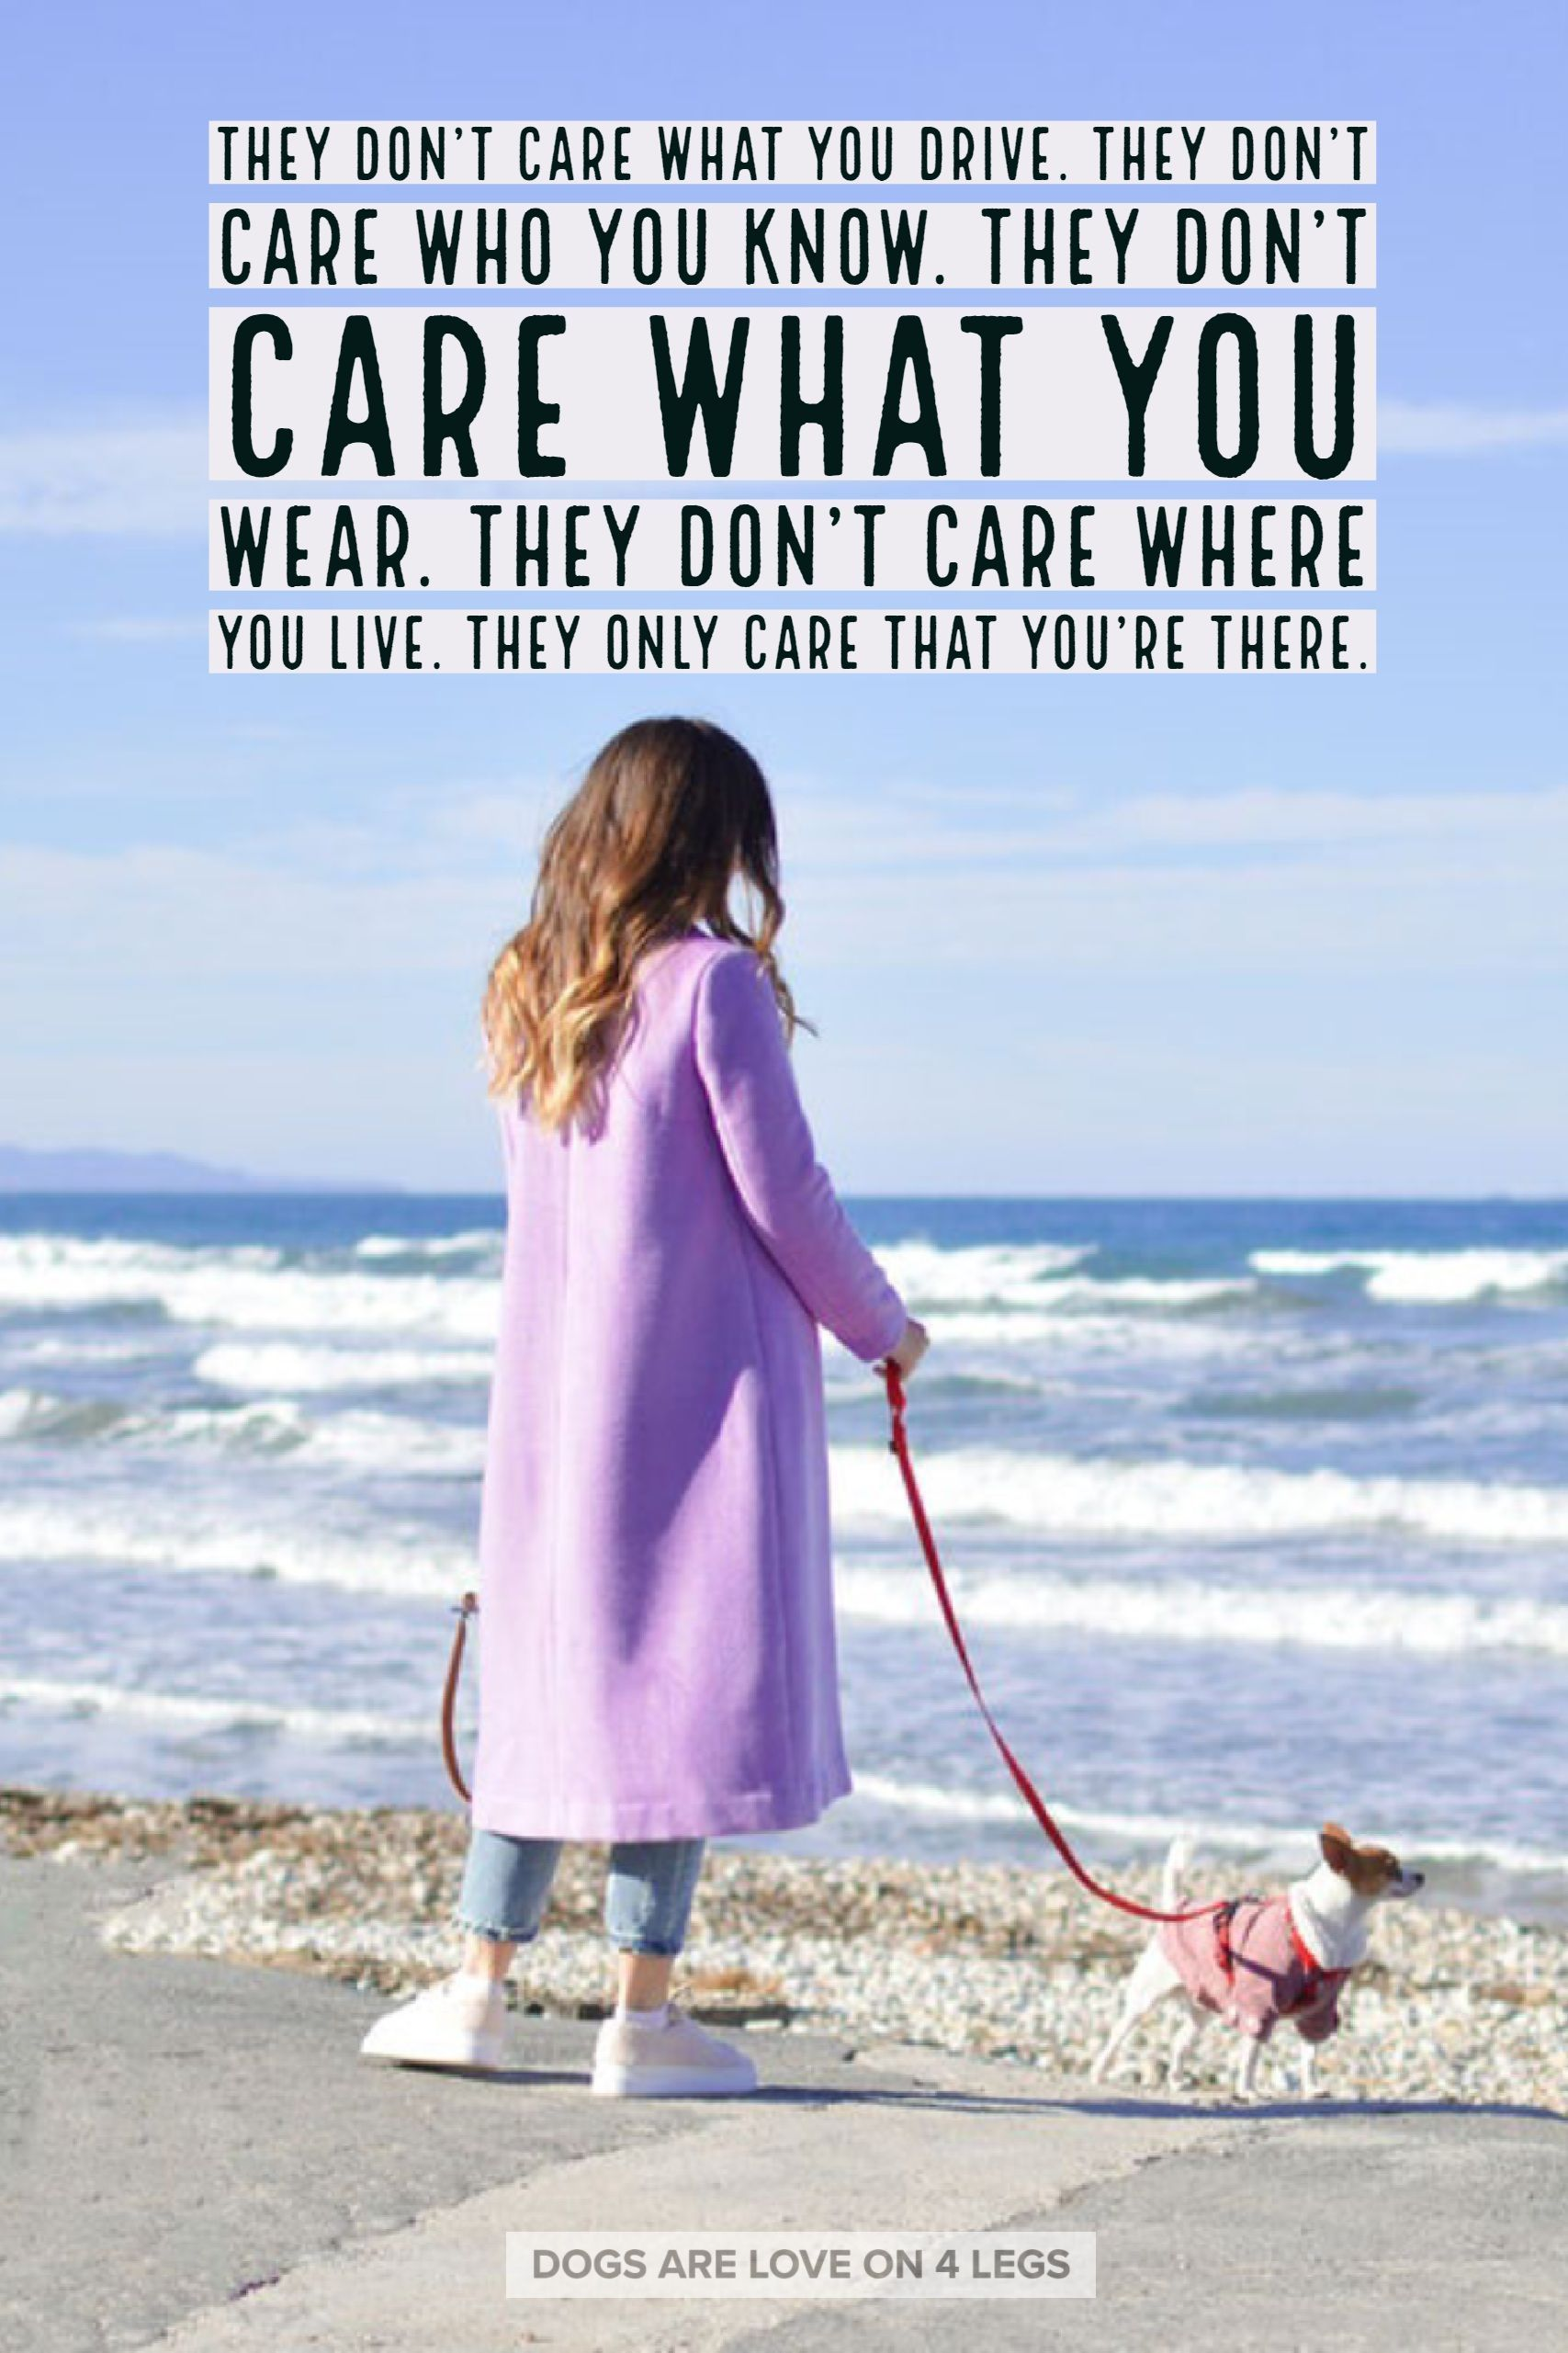 Dog Quote They Don T Care What You Drive They Don T Care Who You Know Dog Dog Quotes Inspirational Dog Quotes Dog Quotes Funny Dog Quotes Inspirational